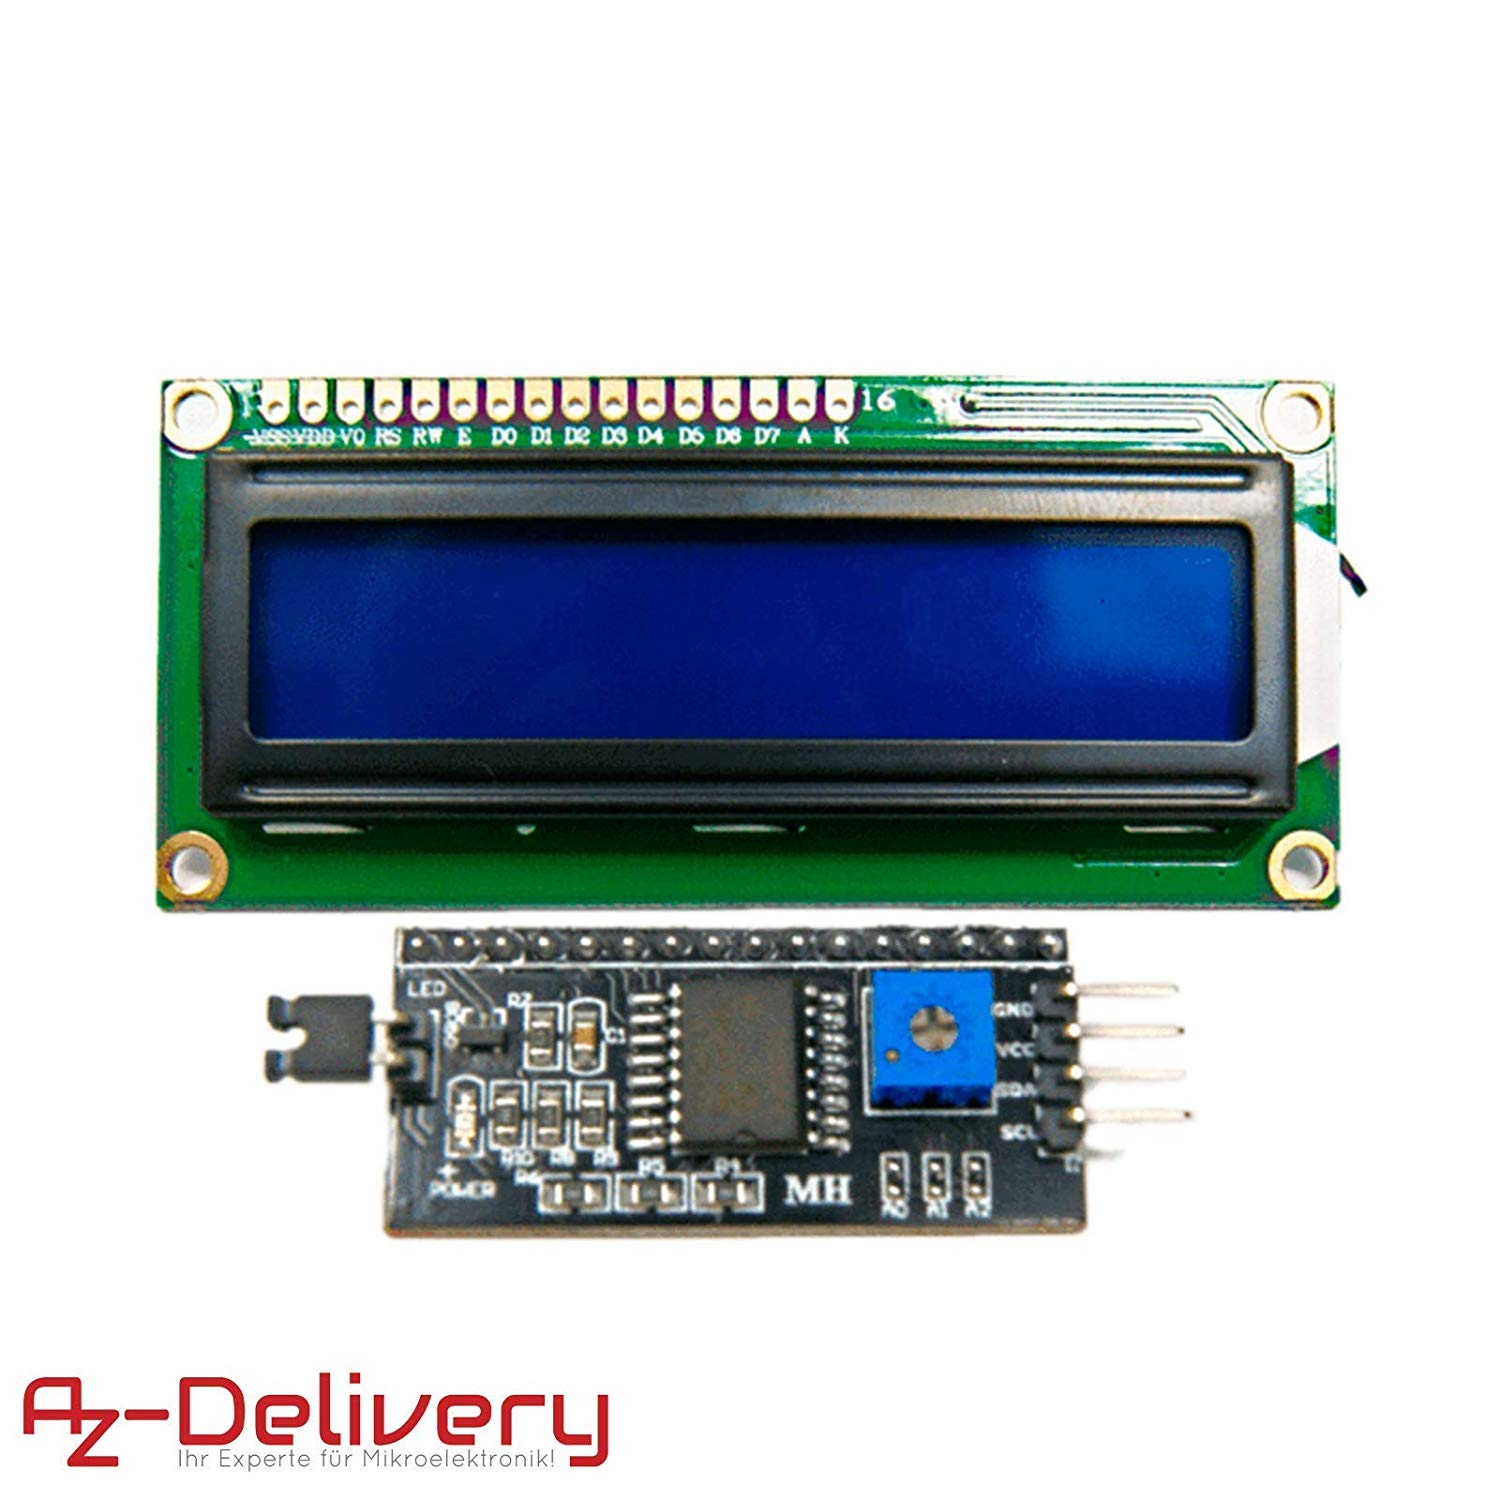 AZDelivery 1602 LCD 2x16 Characters Display Module with Blue Background I2C Bundle for Arduino including eBook